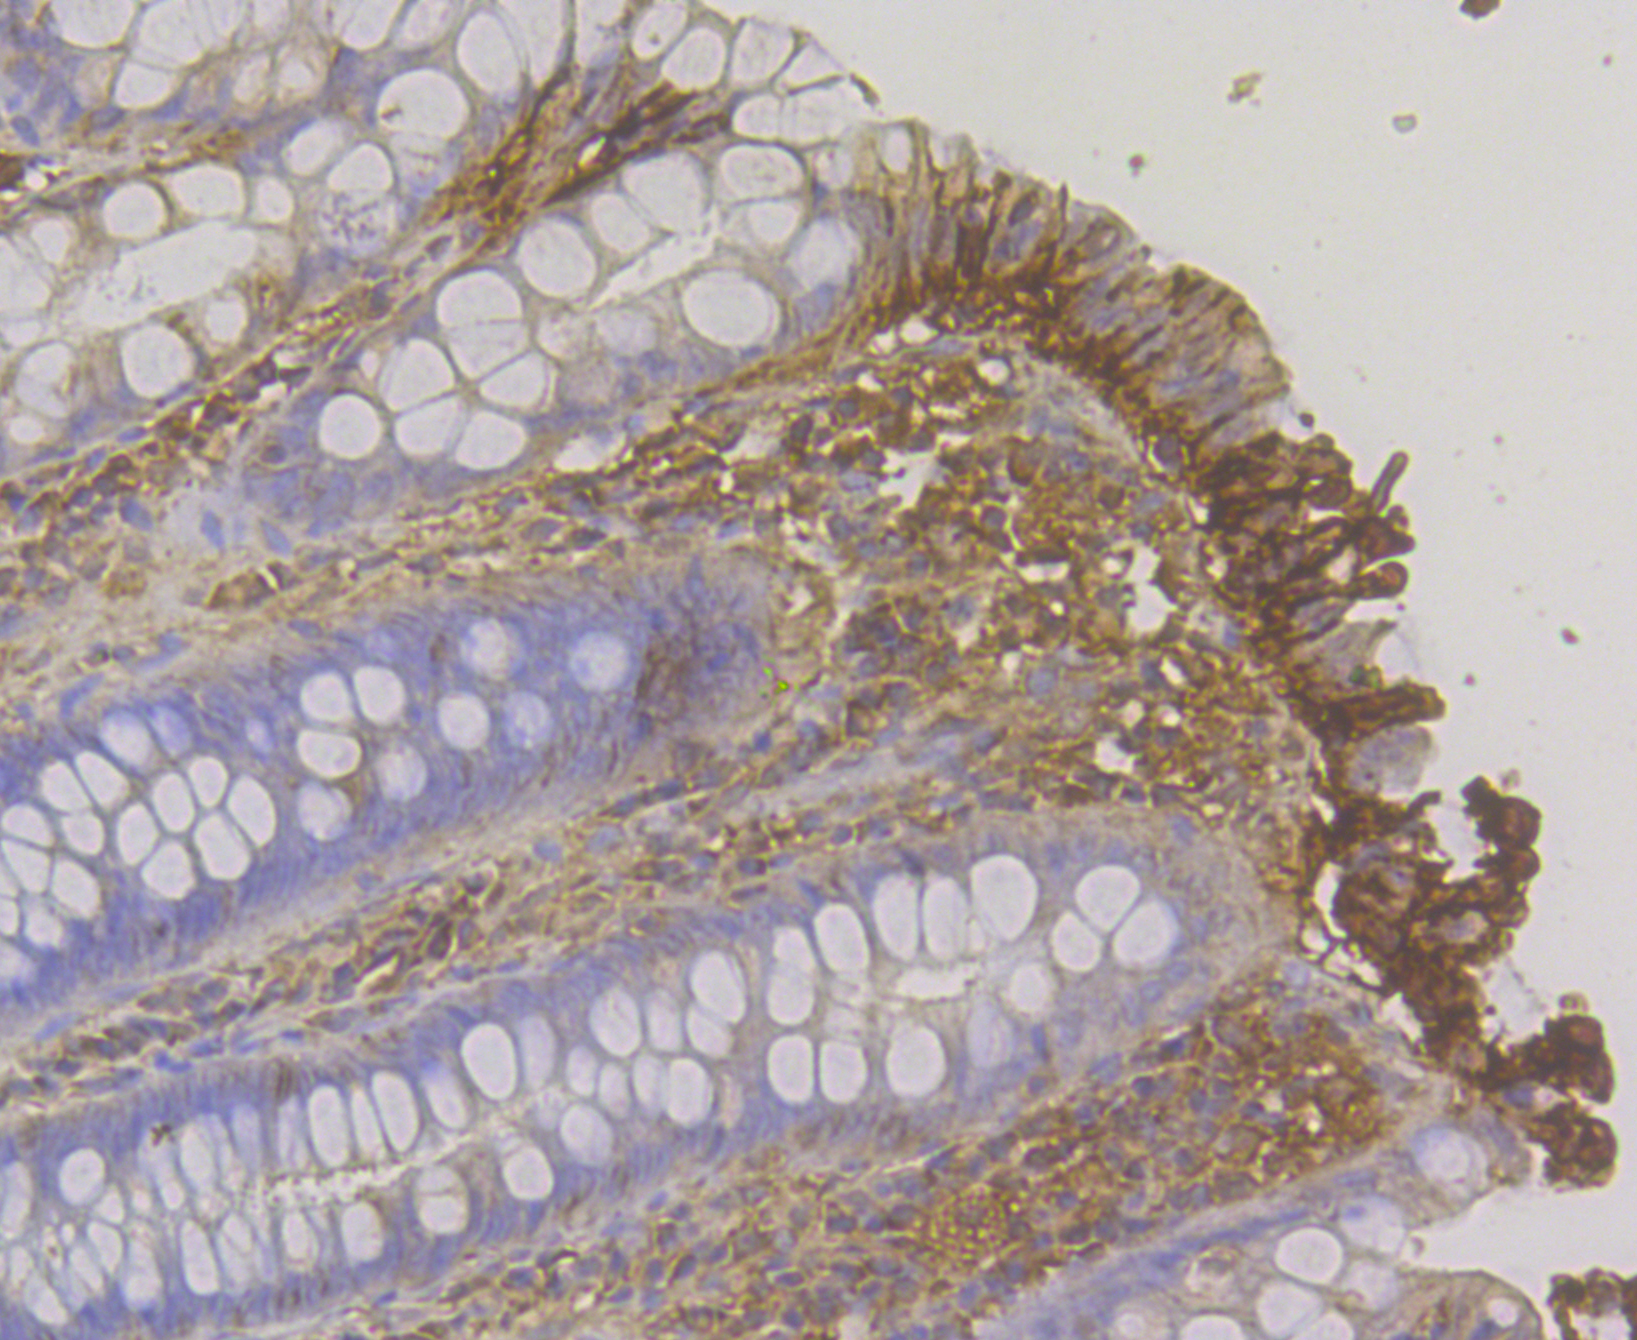 Immunohistochemical analysis of paraffin-embedded human colon tissue using anti-CDH17 antibody. The section was pre-treated using heat mediated antigen retrieval with Tris-EDTA buffer (pH 8.0-8.4) for 20 minutes.The tissues were blocked in 5% BSA for 30 minutes at room temperature, washed with ddH2O and PBS, and then probed with the antibody (ER1804-02) at 1/50 dilution, for 30 minutes at room temperature and detected using an HRP conjugated compact polymer system. DAB was used as the chromogen. Counter stained with hematoxylin and mounted with DPX.